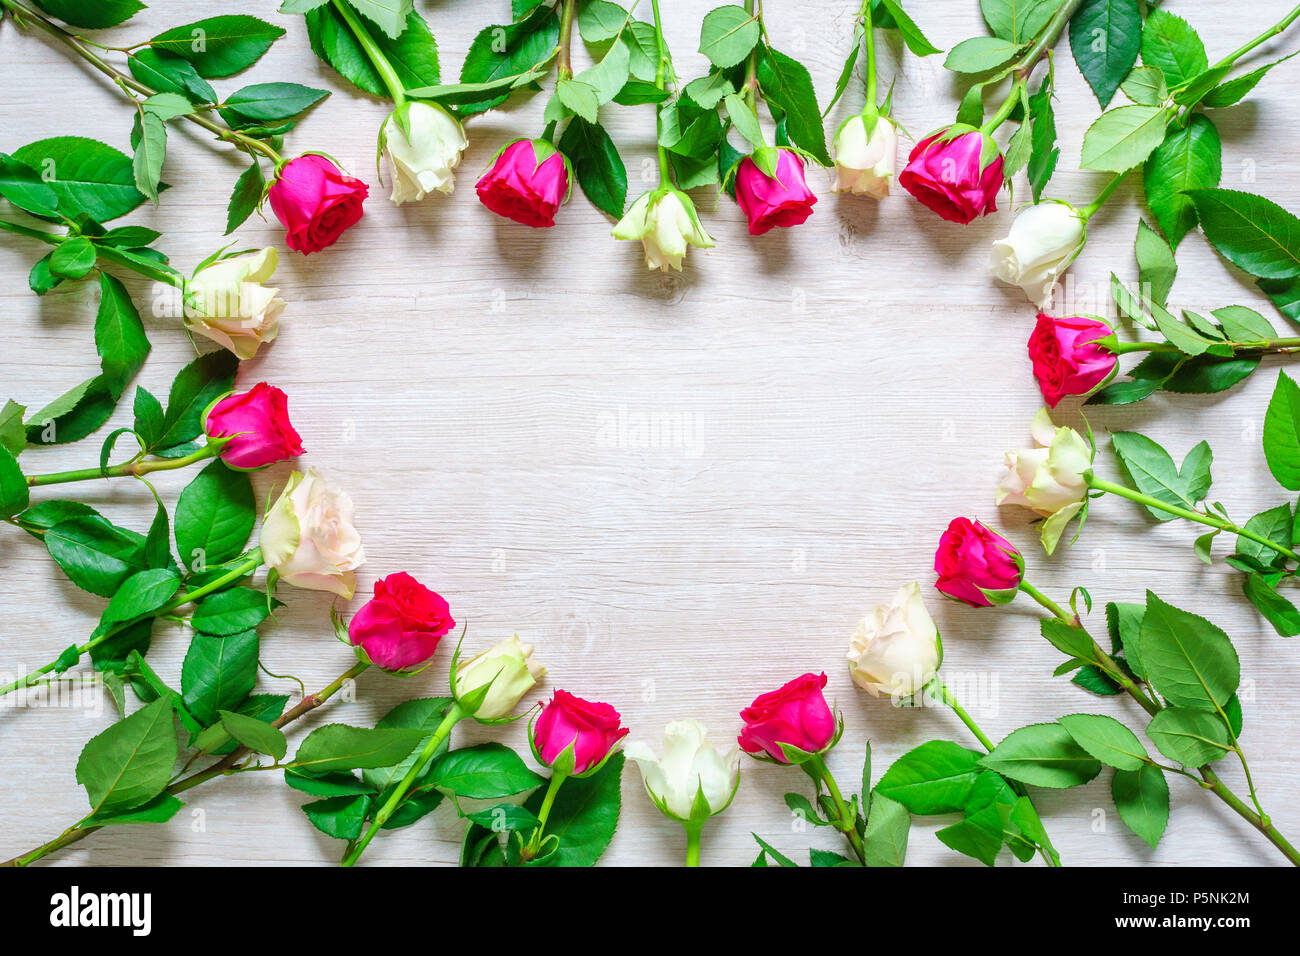 Heart From Pink And White Rose Flowers On Rustic Table For March 8